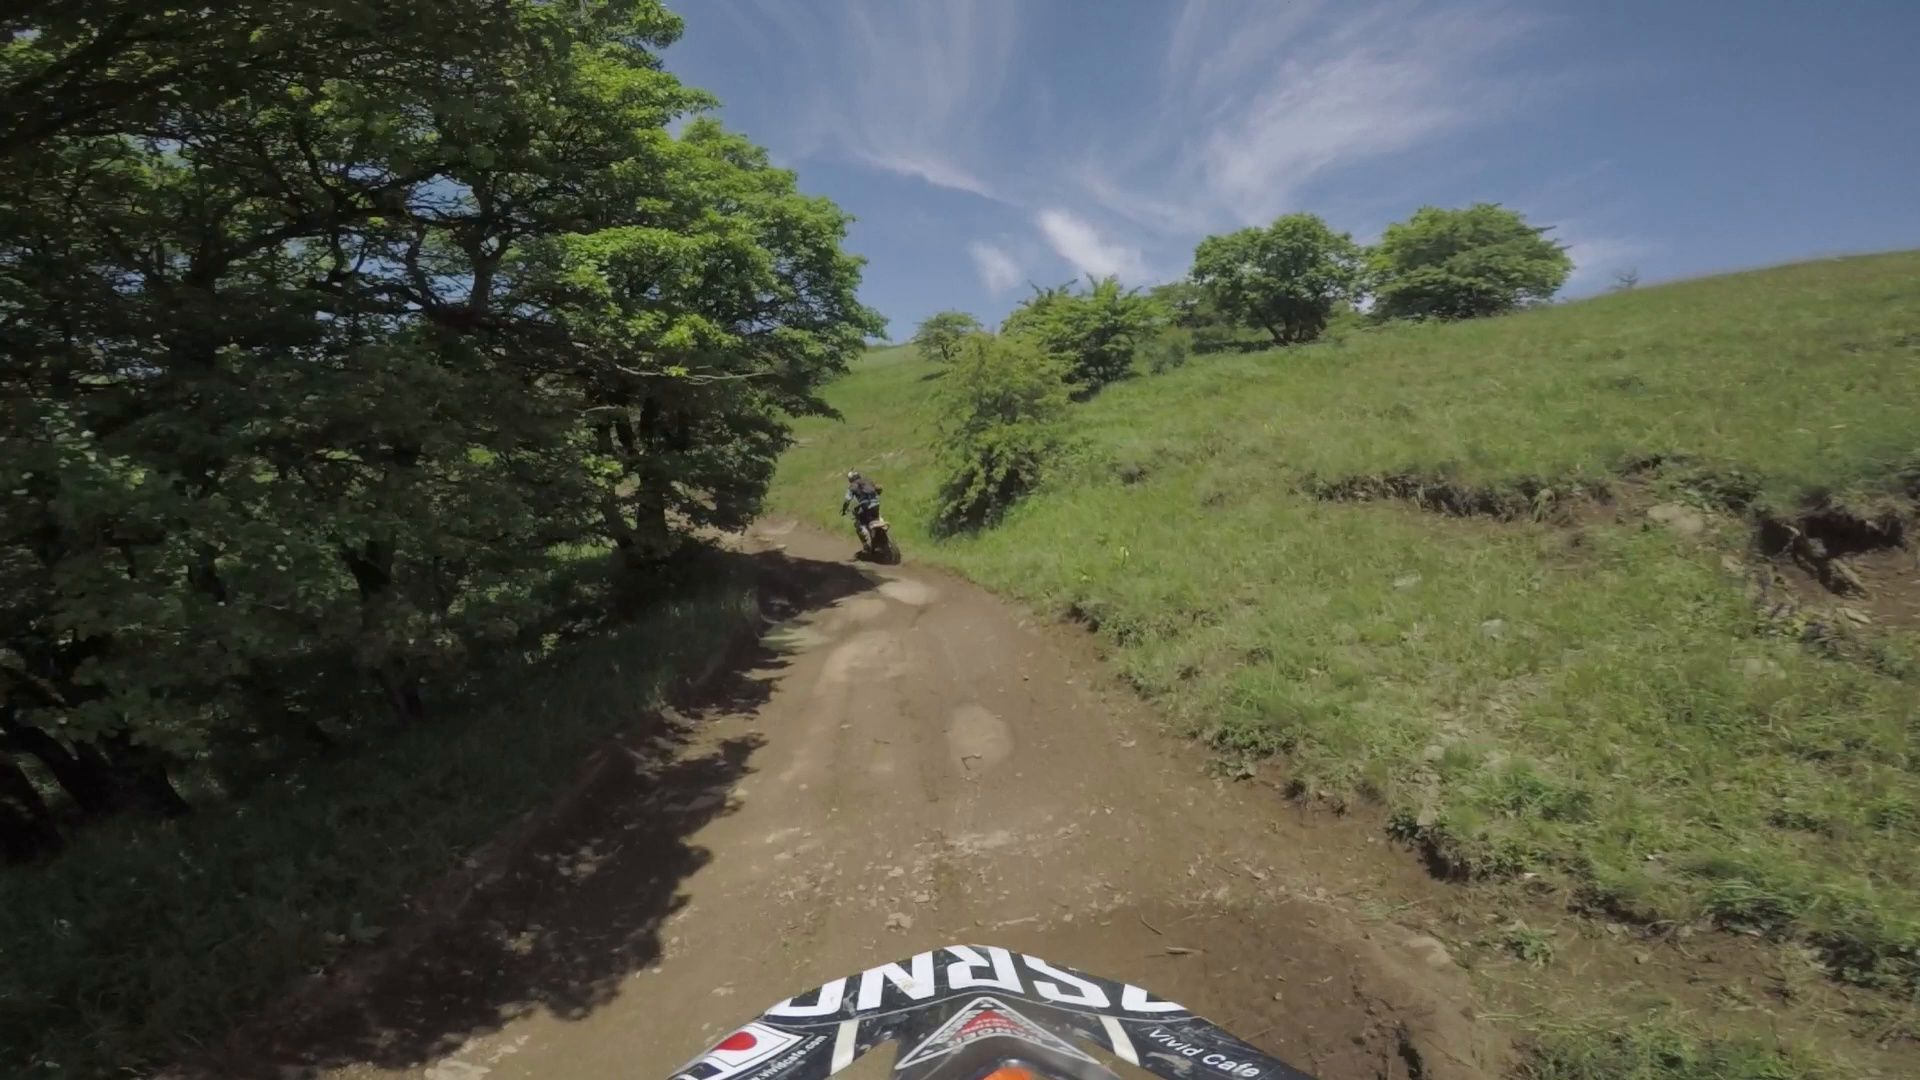 Bike nature Enduro journey with dirt bike high in the Caucasian mountains hills journeydirtbikeBike